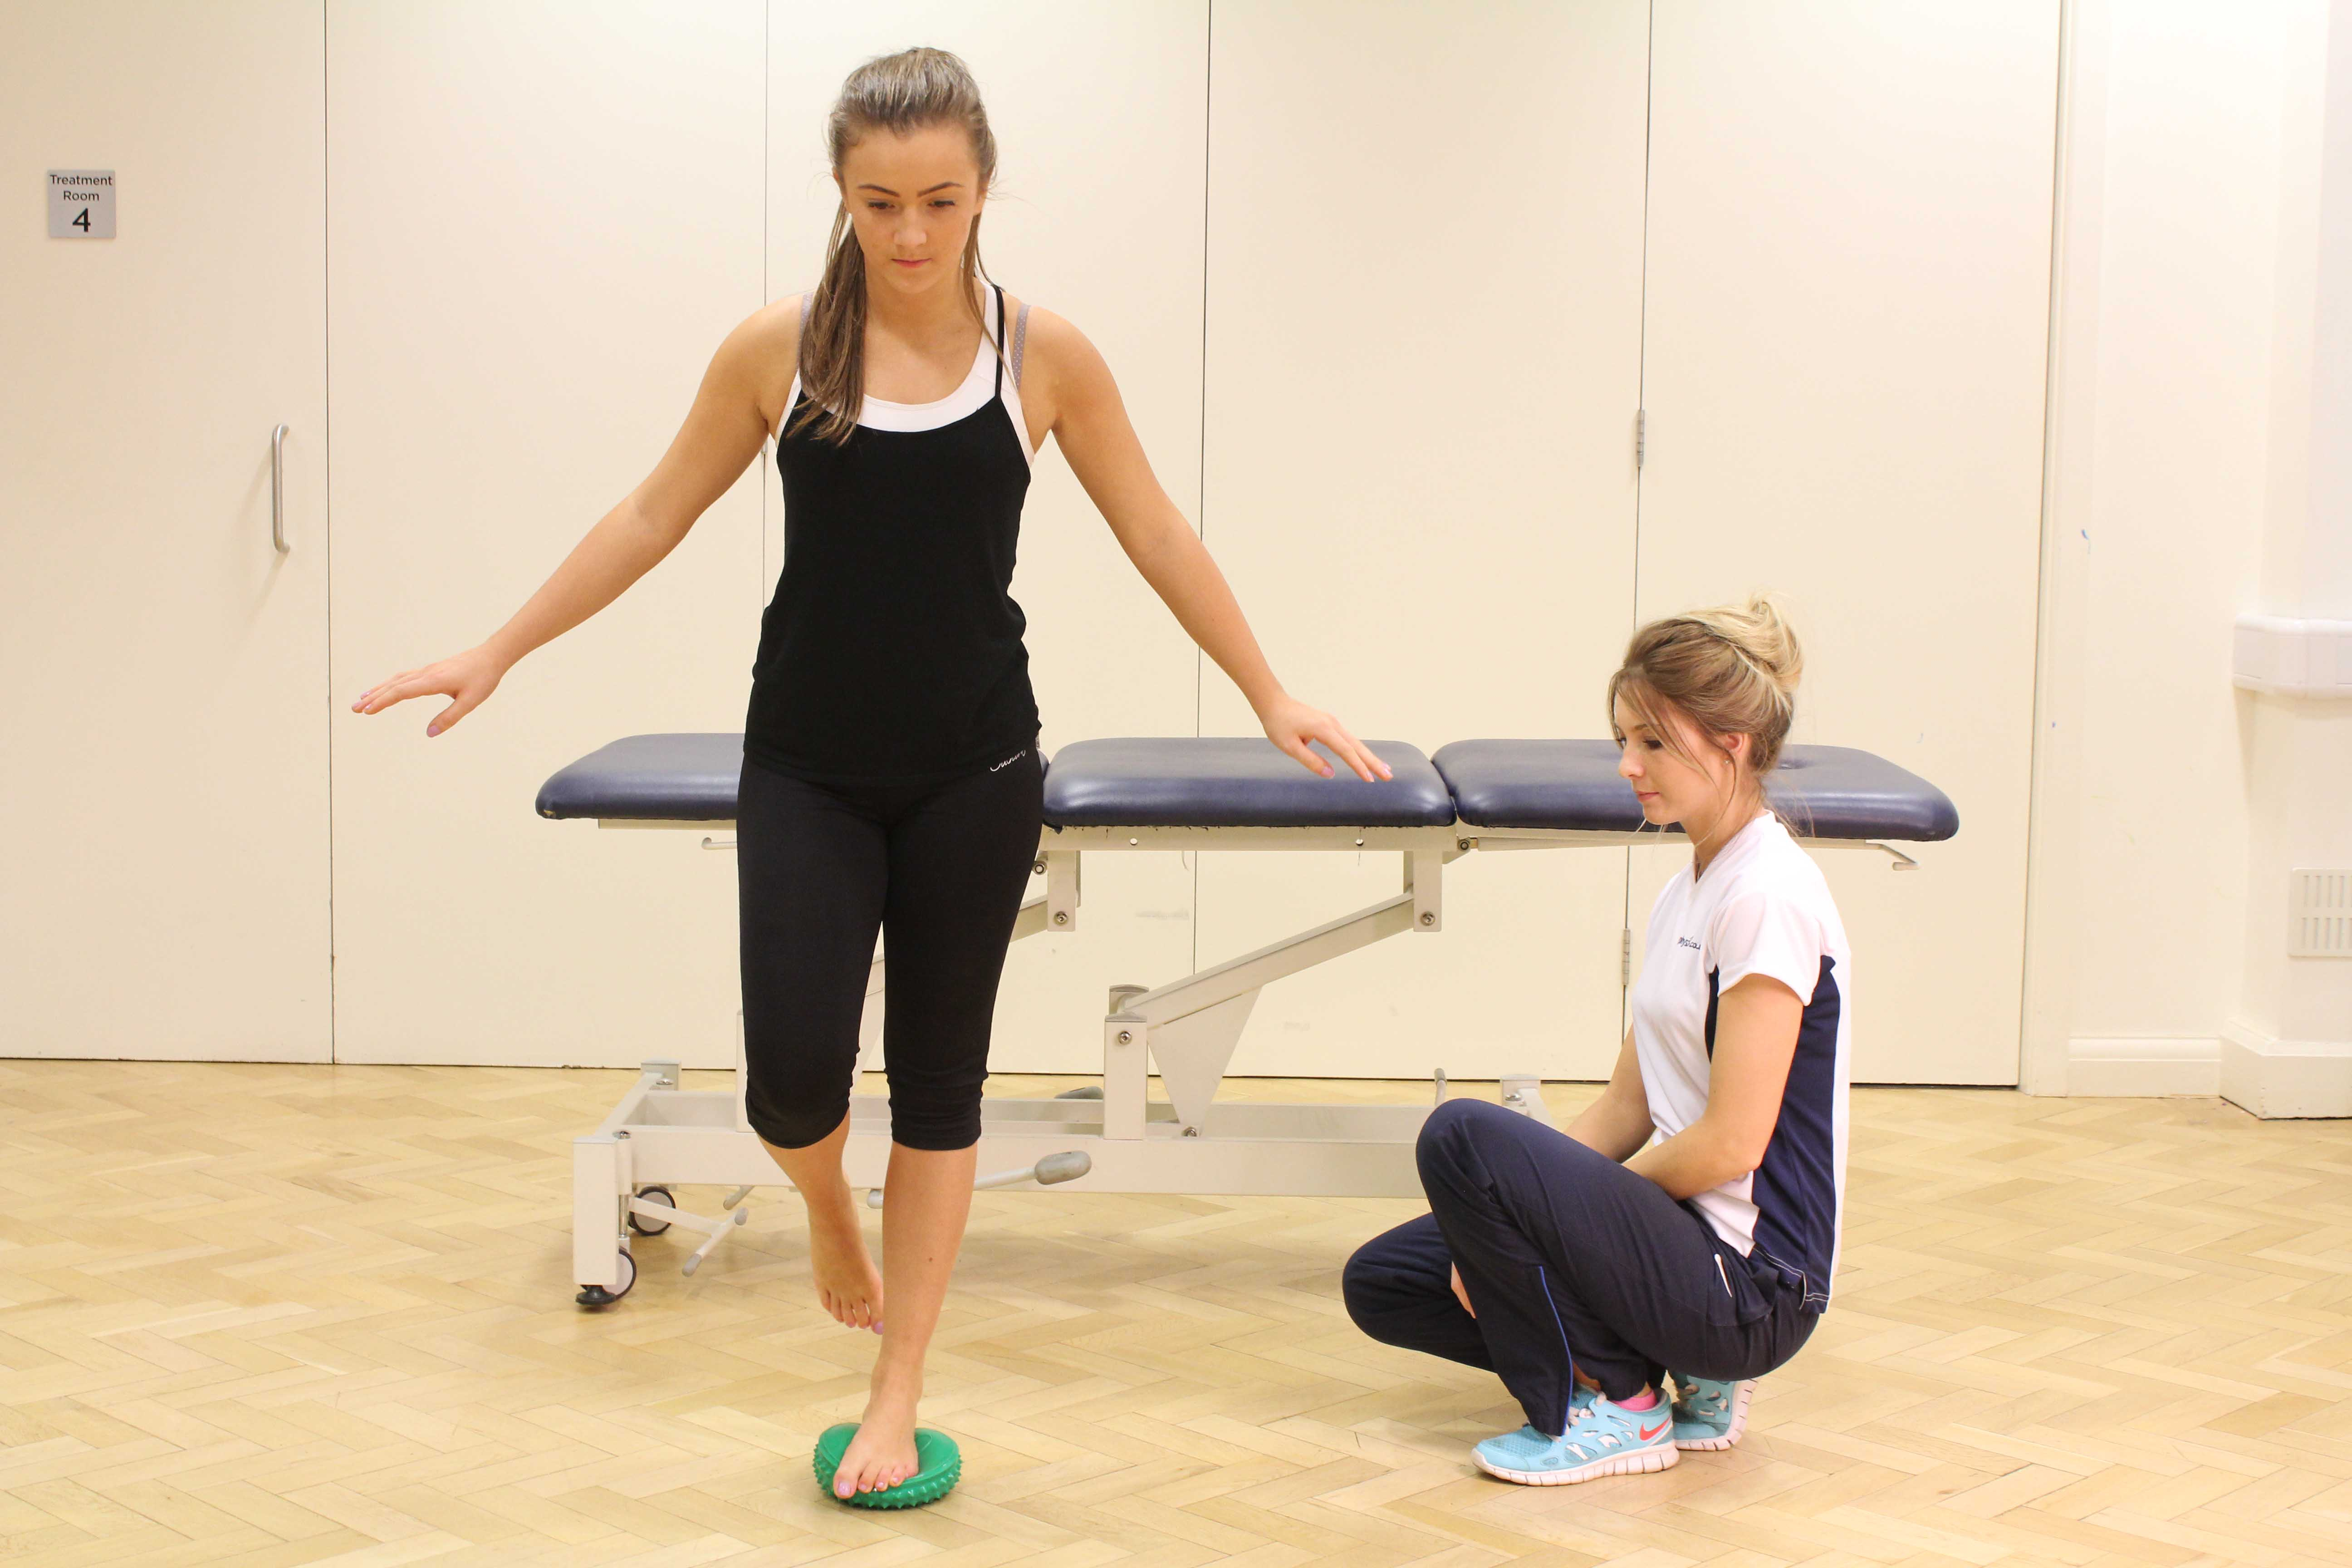 foot and ankle stability exercises supervised by an experienced therapist